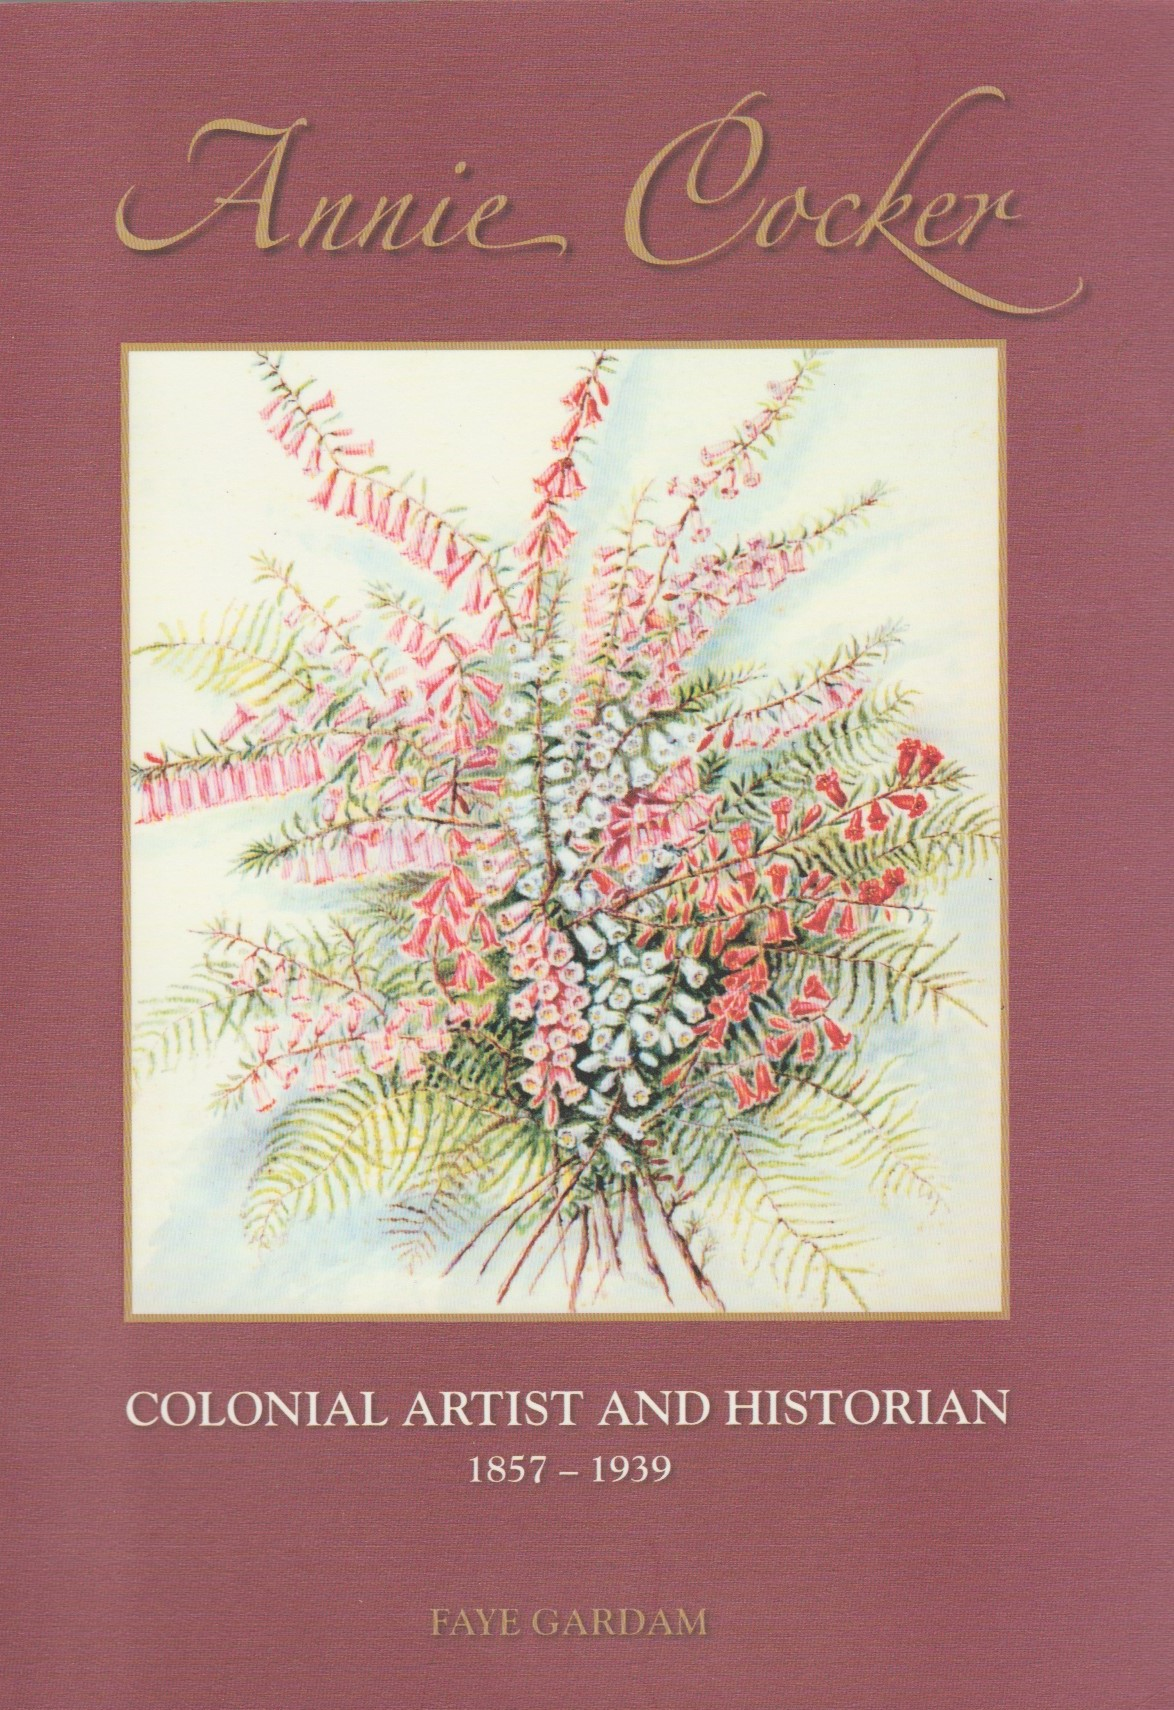 Annie Cocker - Colonial artist & historian 1857-1939, signed